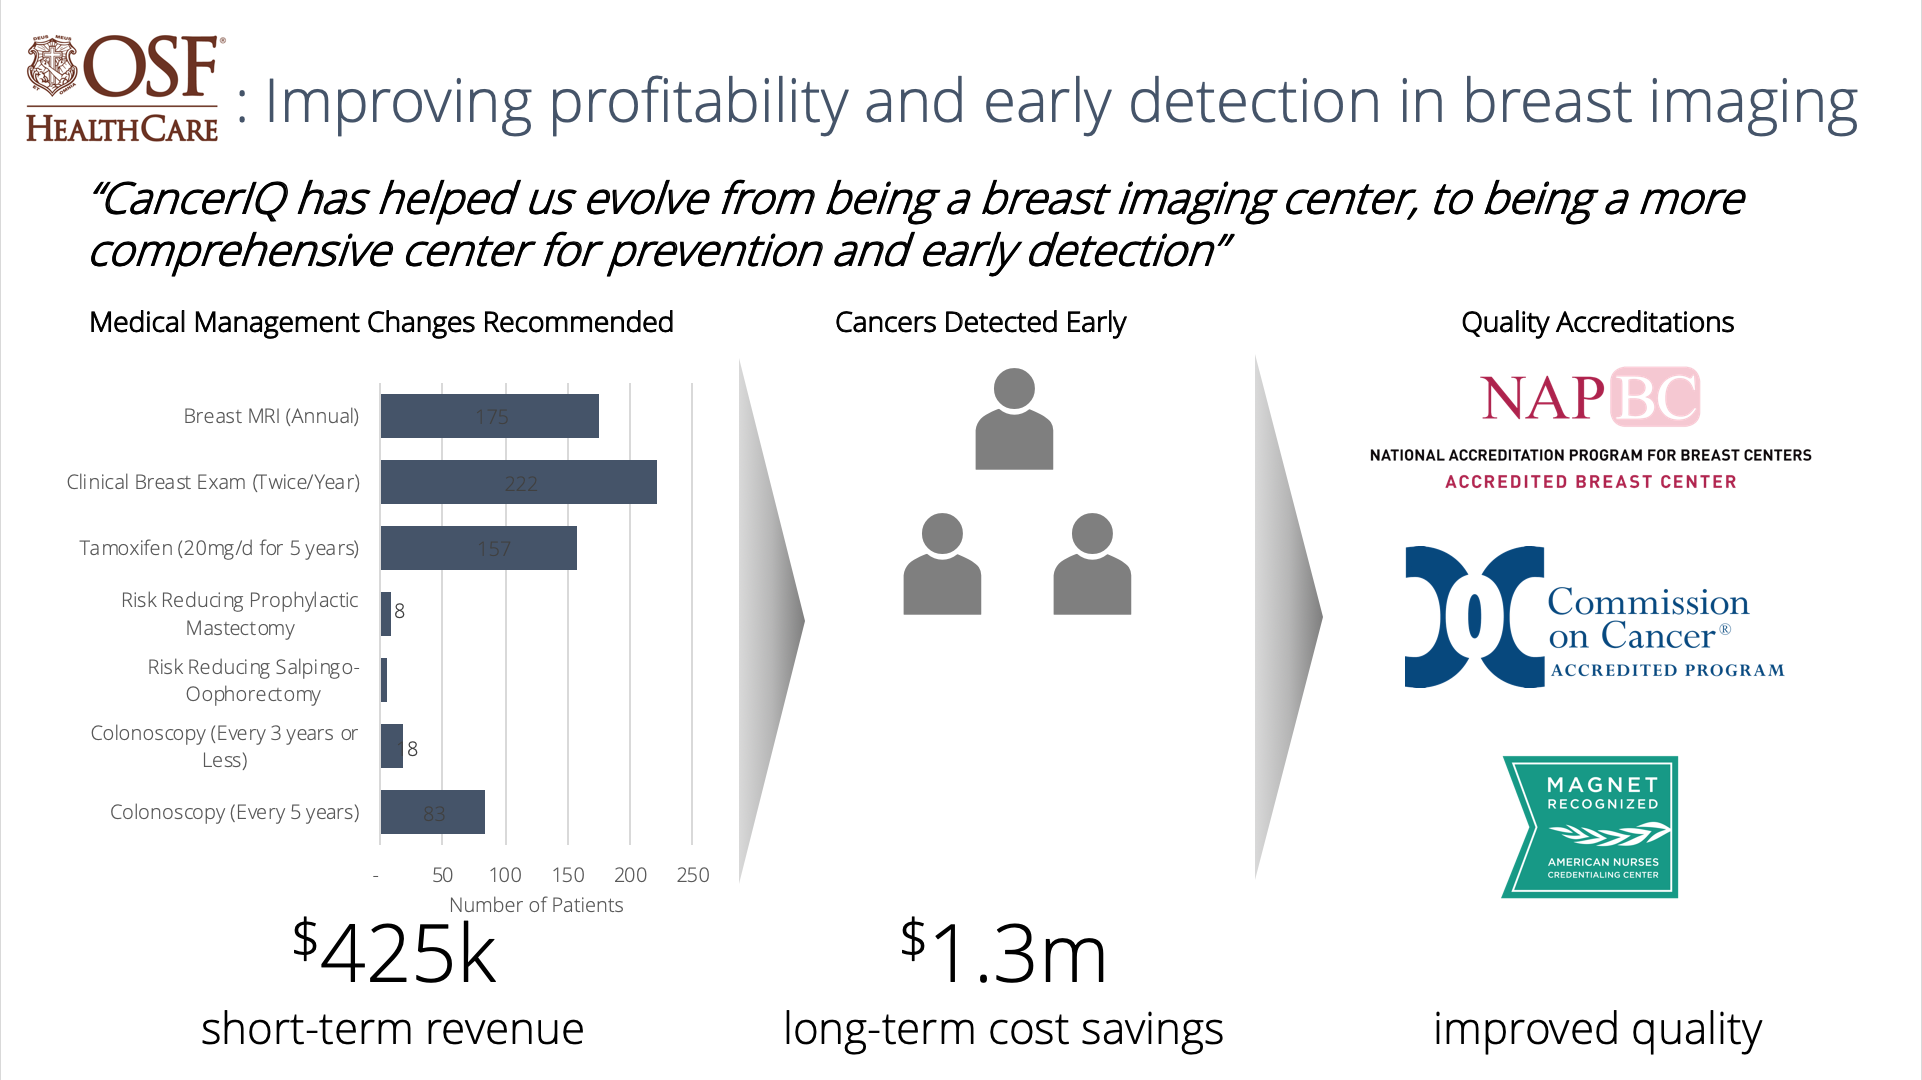 Improve profitability and early detection in breast imaging